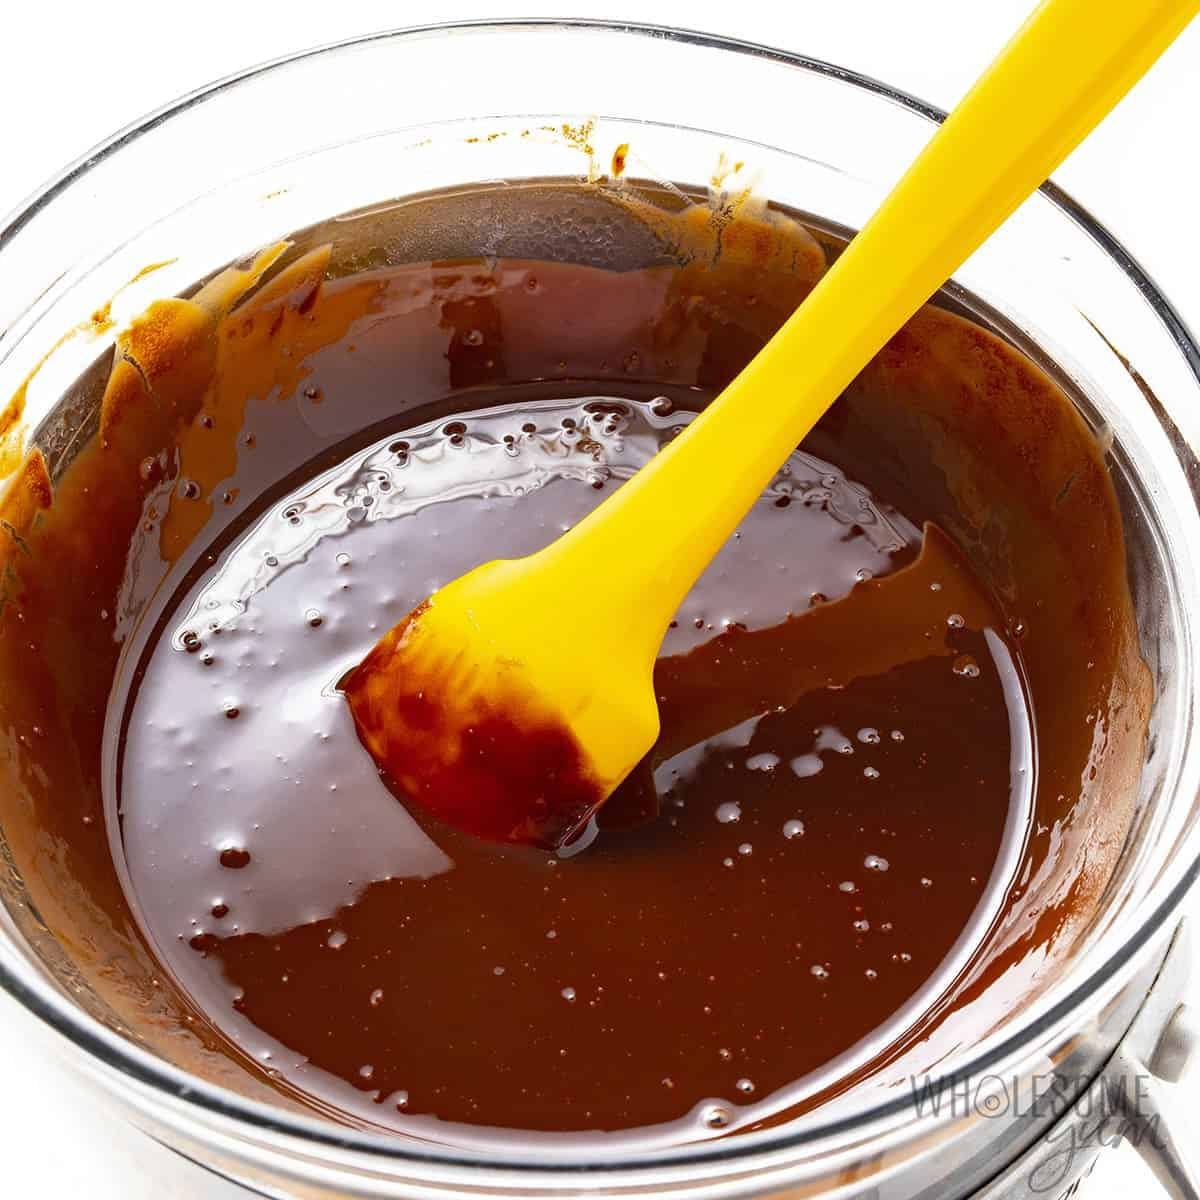 Butter and chocolate melted in a double boiler